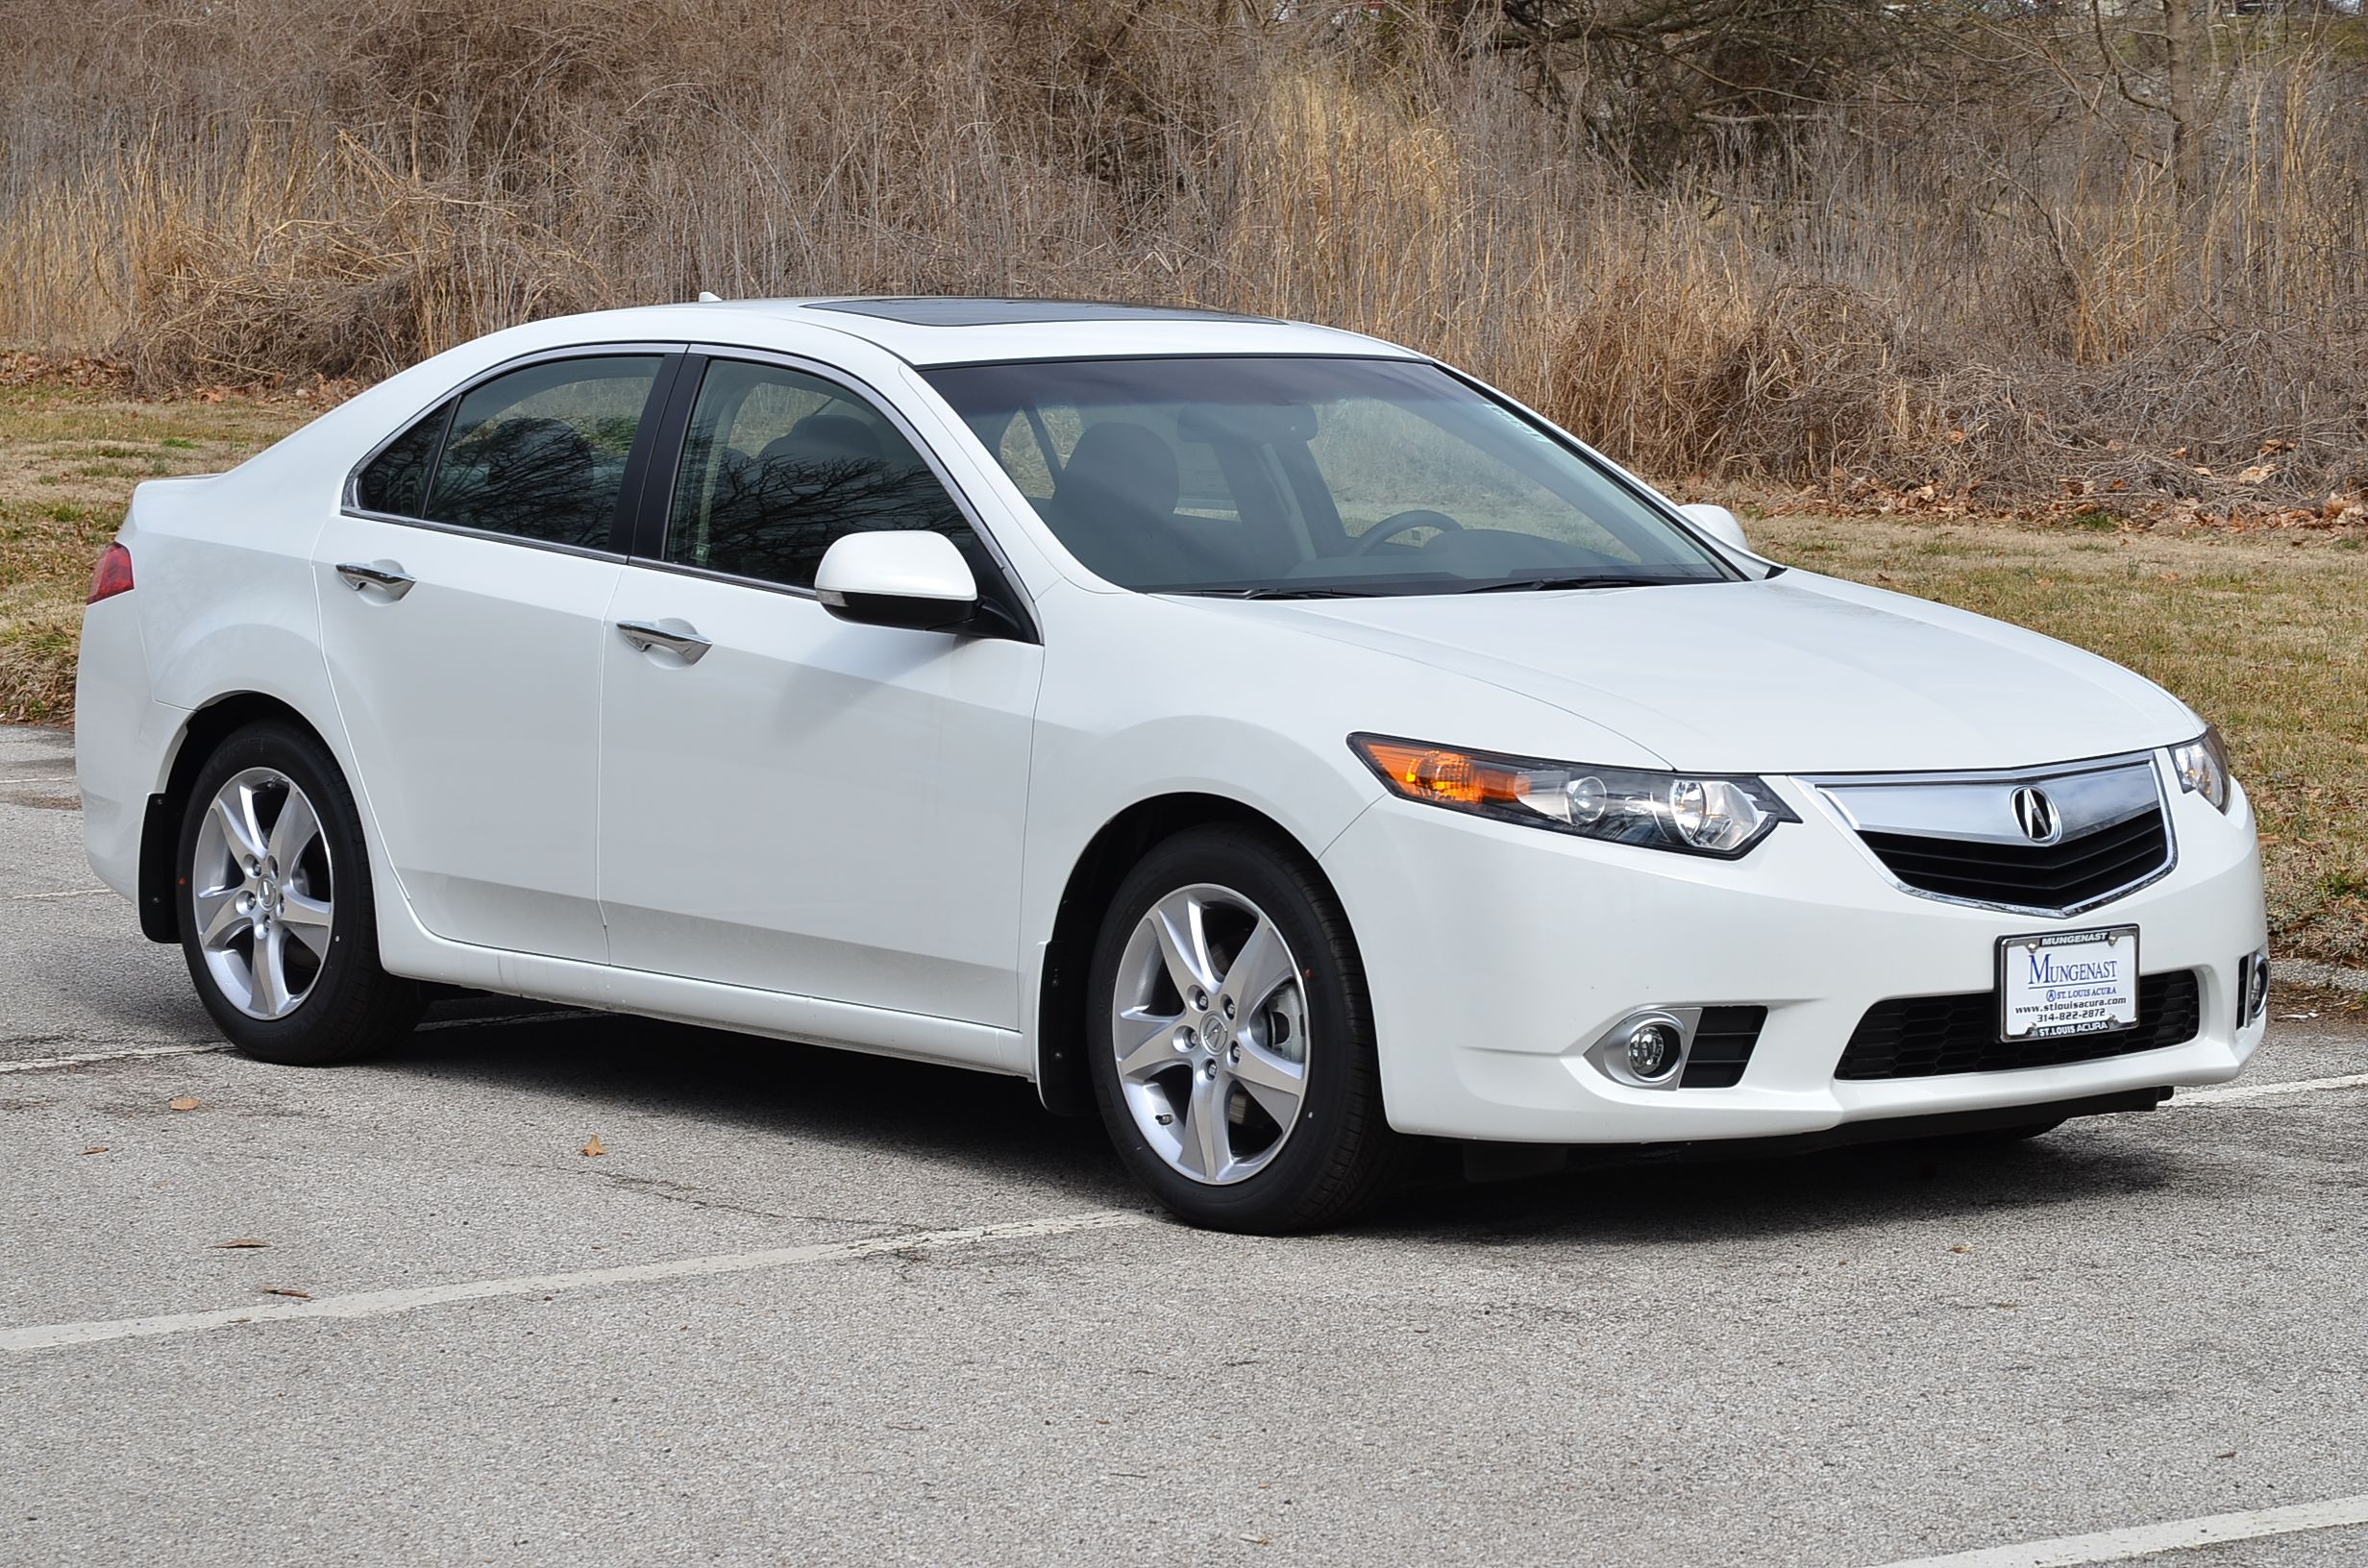 Tl type s rims 45 277miles 10 000 obo tsx wing fighter pinterest acura tsx honda accord and acura tl